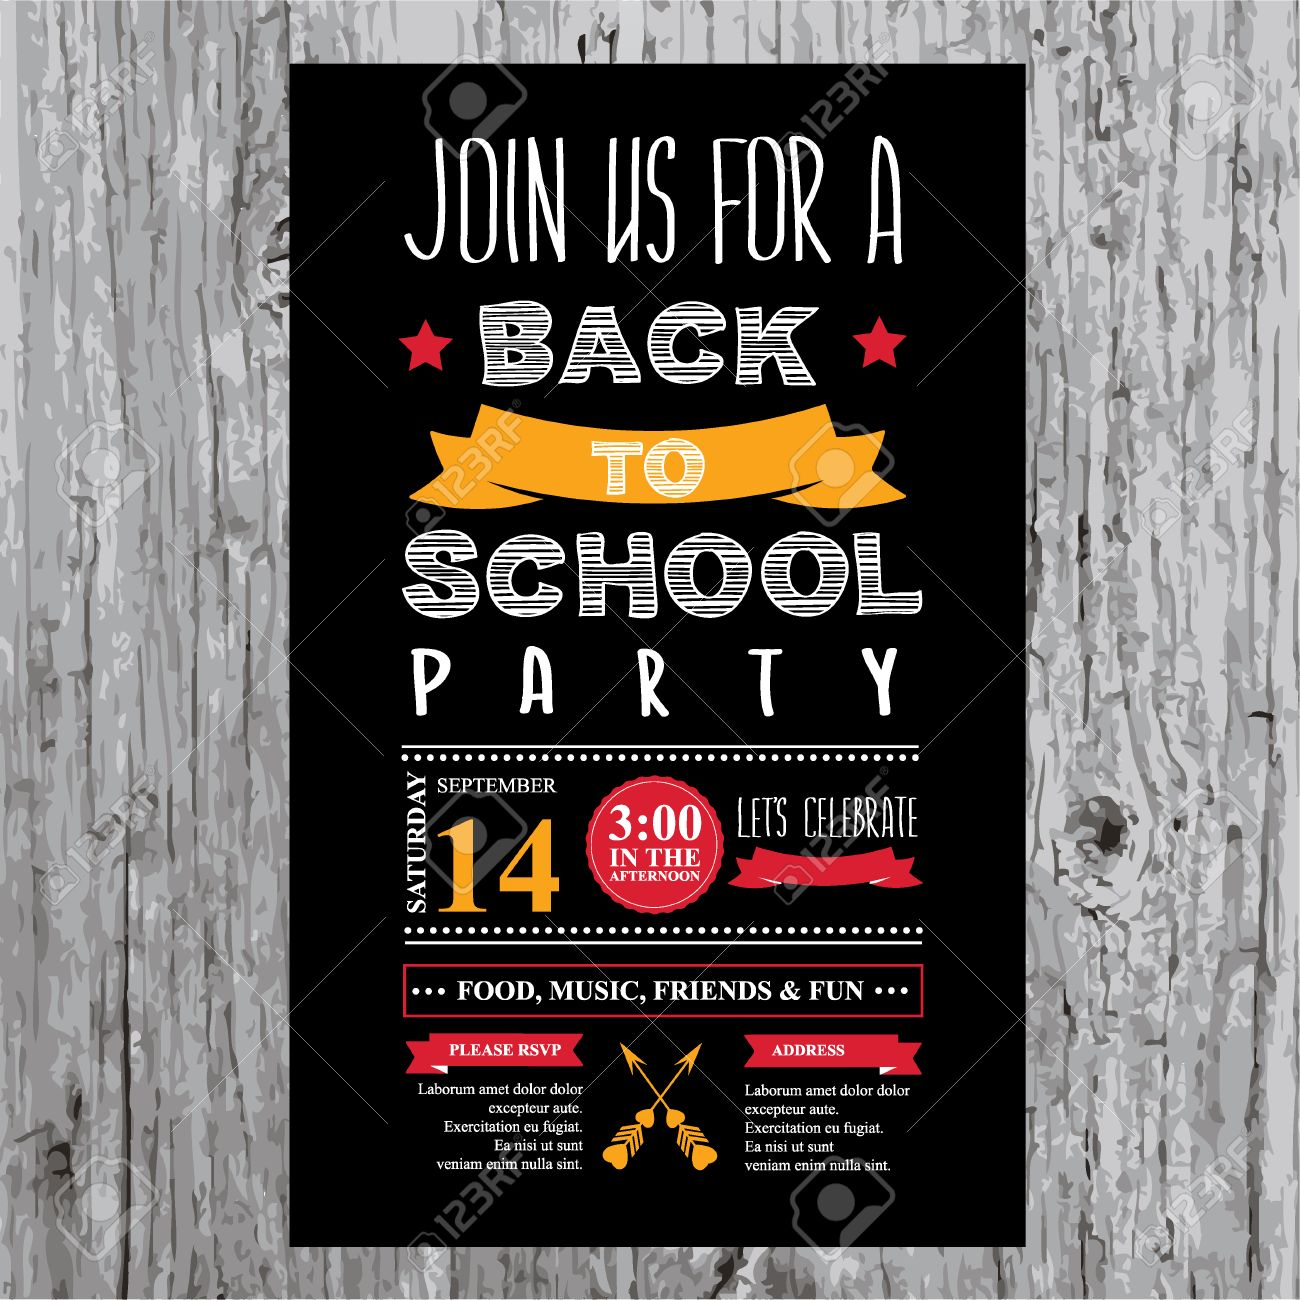 Back to school party invitation design template vector image.